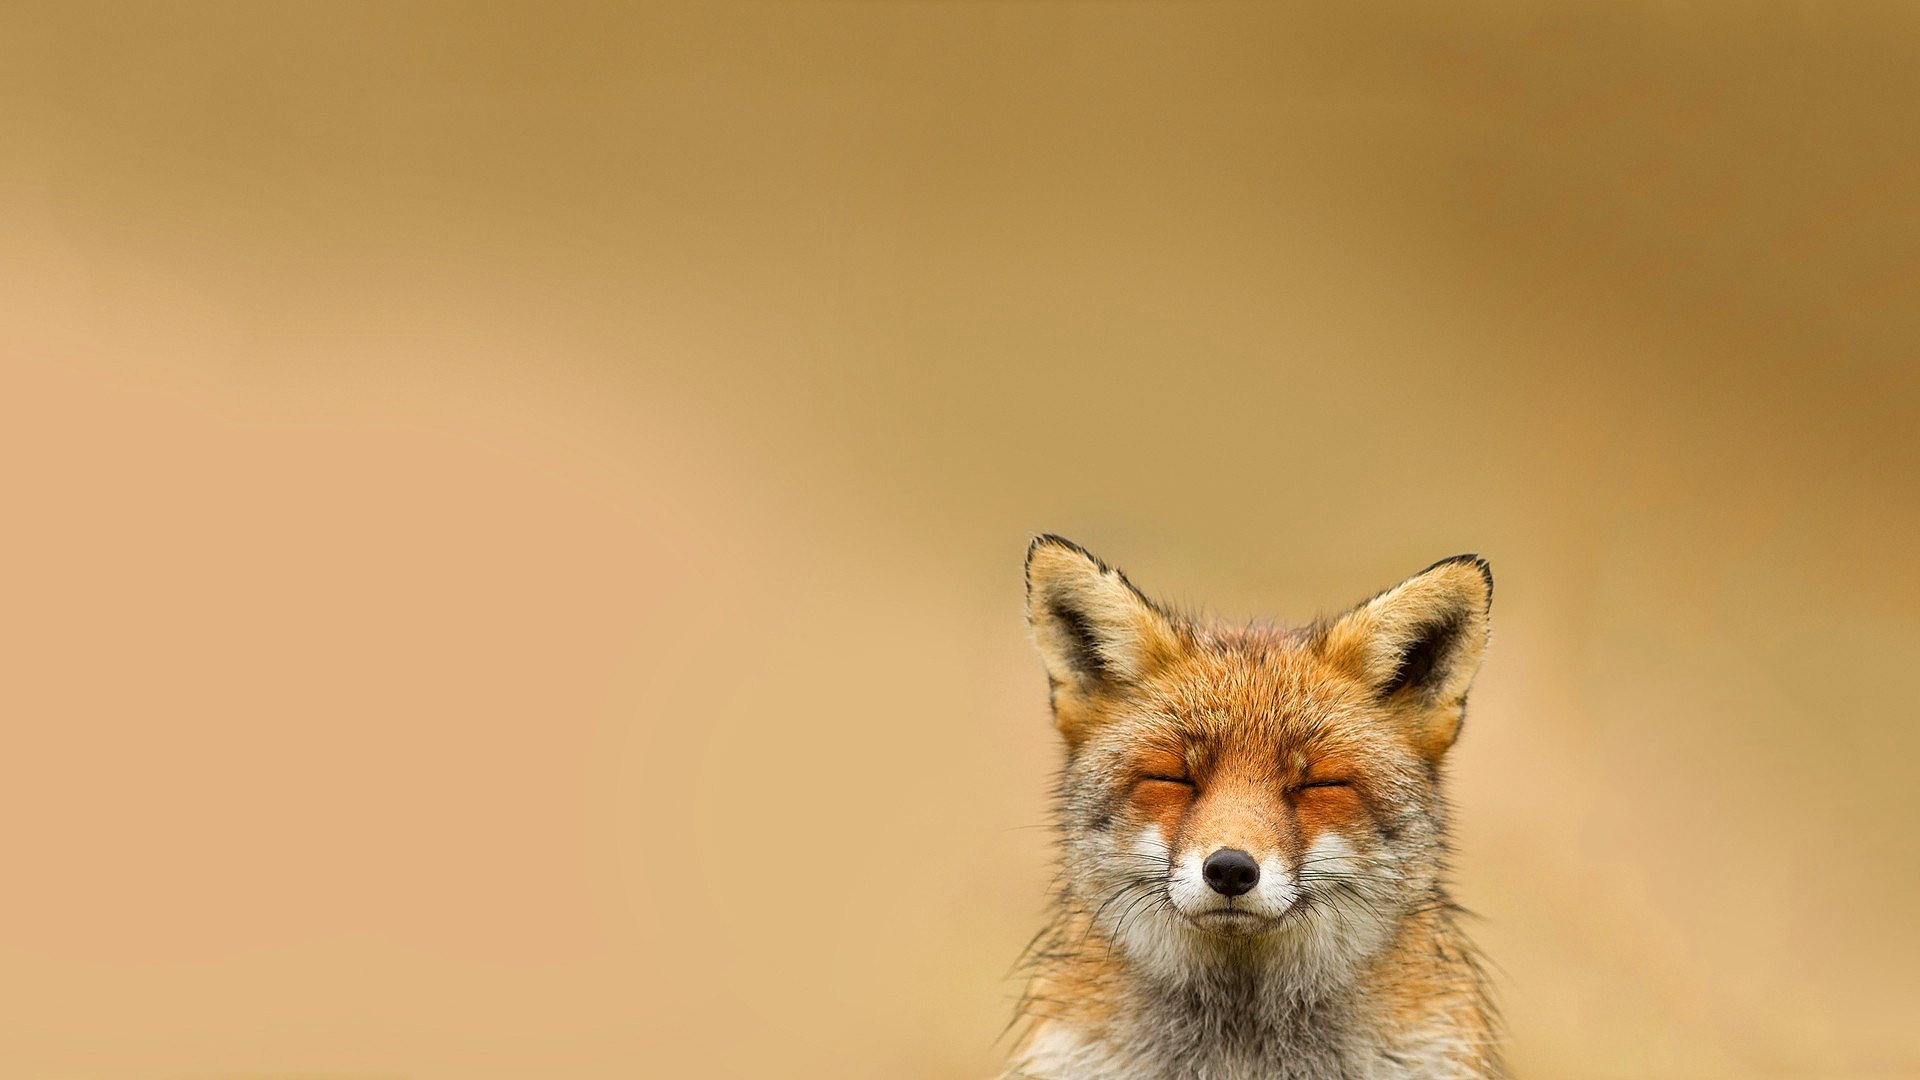 Animals Happy Wolf Wallpapers Hd Desktop And Mobile: Happy, Animals, Relaxing, Fox HD Wallpapers / Desktop And